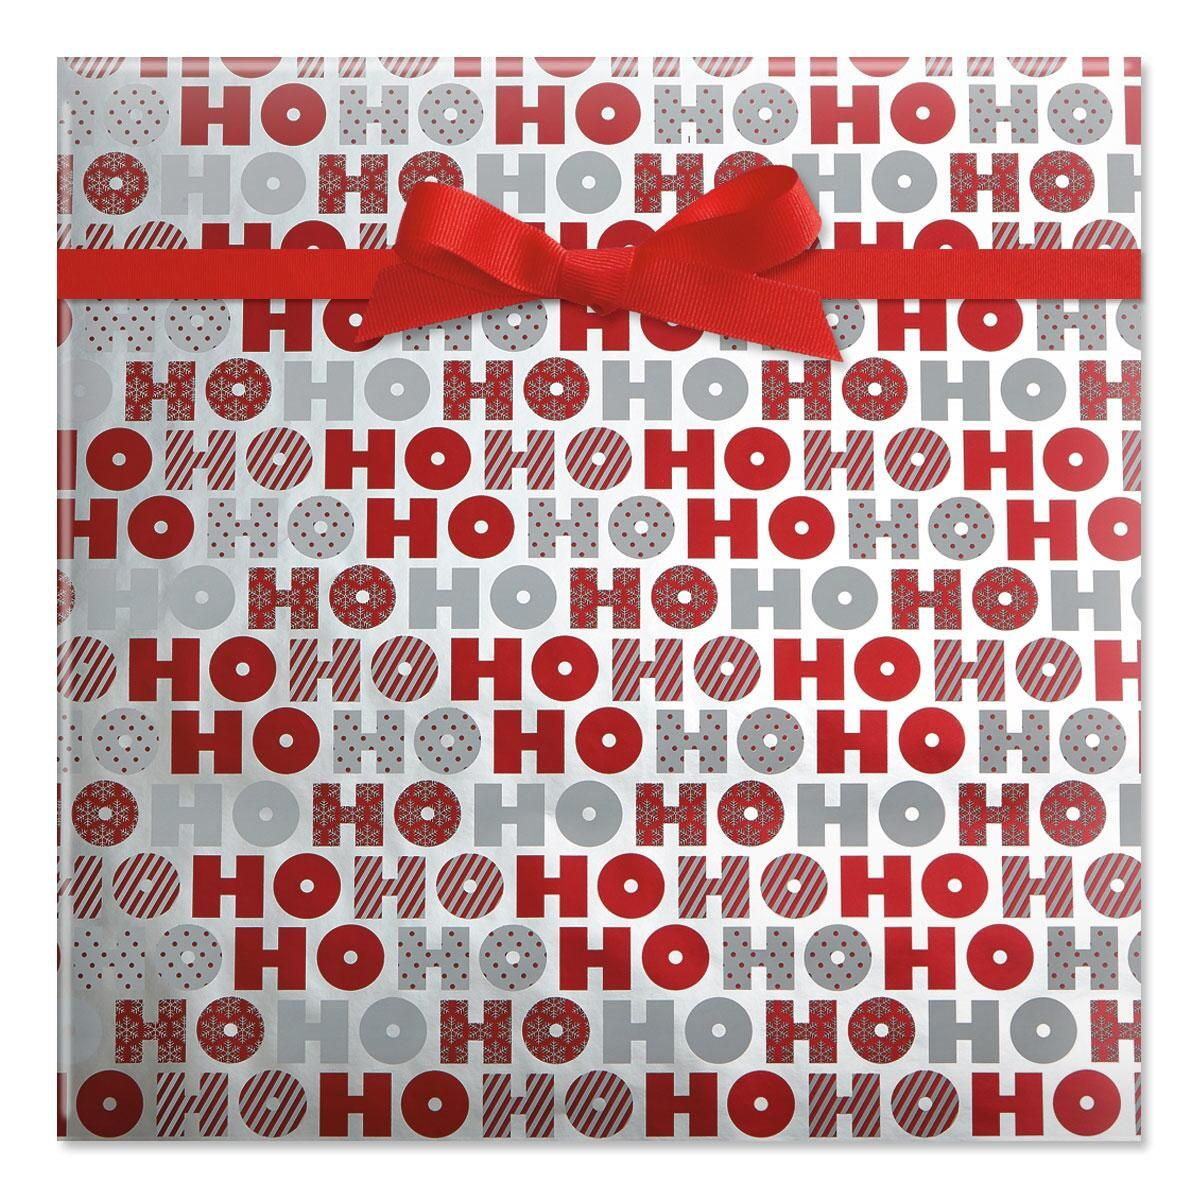 Red & White Ho Ho Ho Foil Rolled Gift Wrap